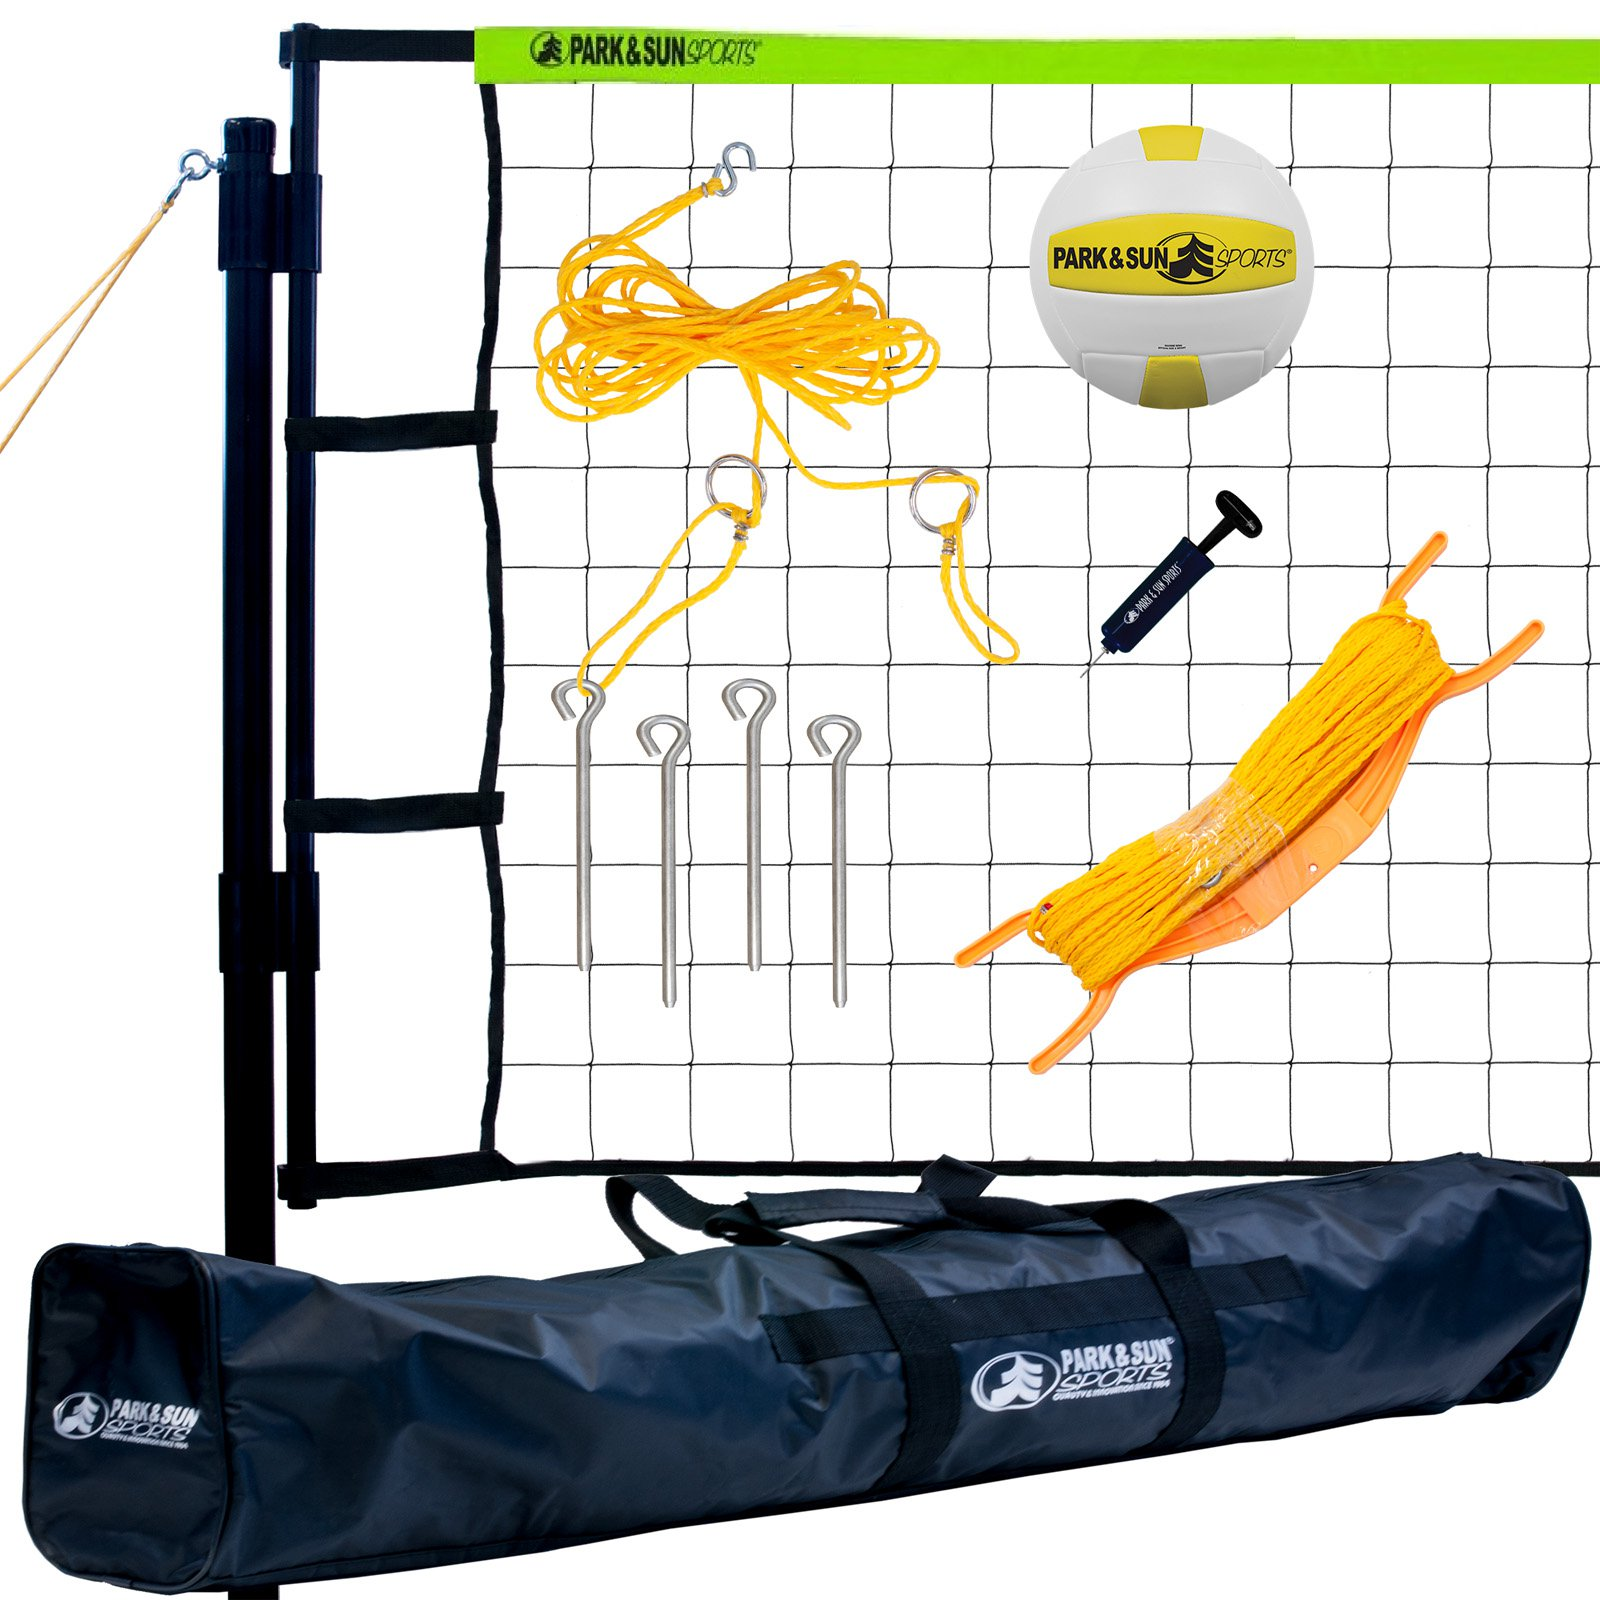 Park & Sun Tournament Flex Volleyball Net System